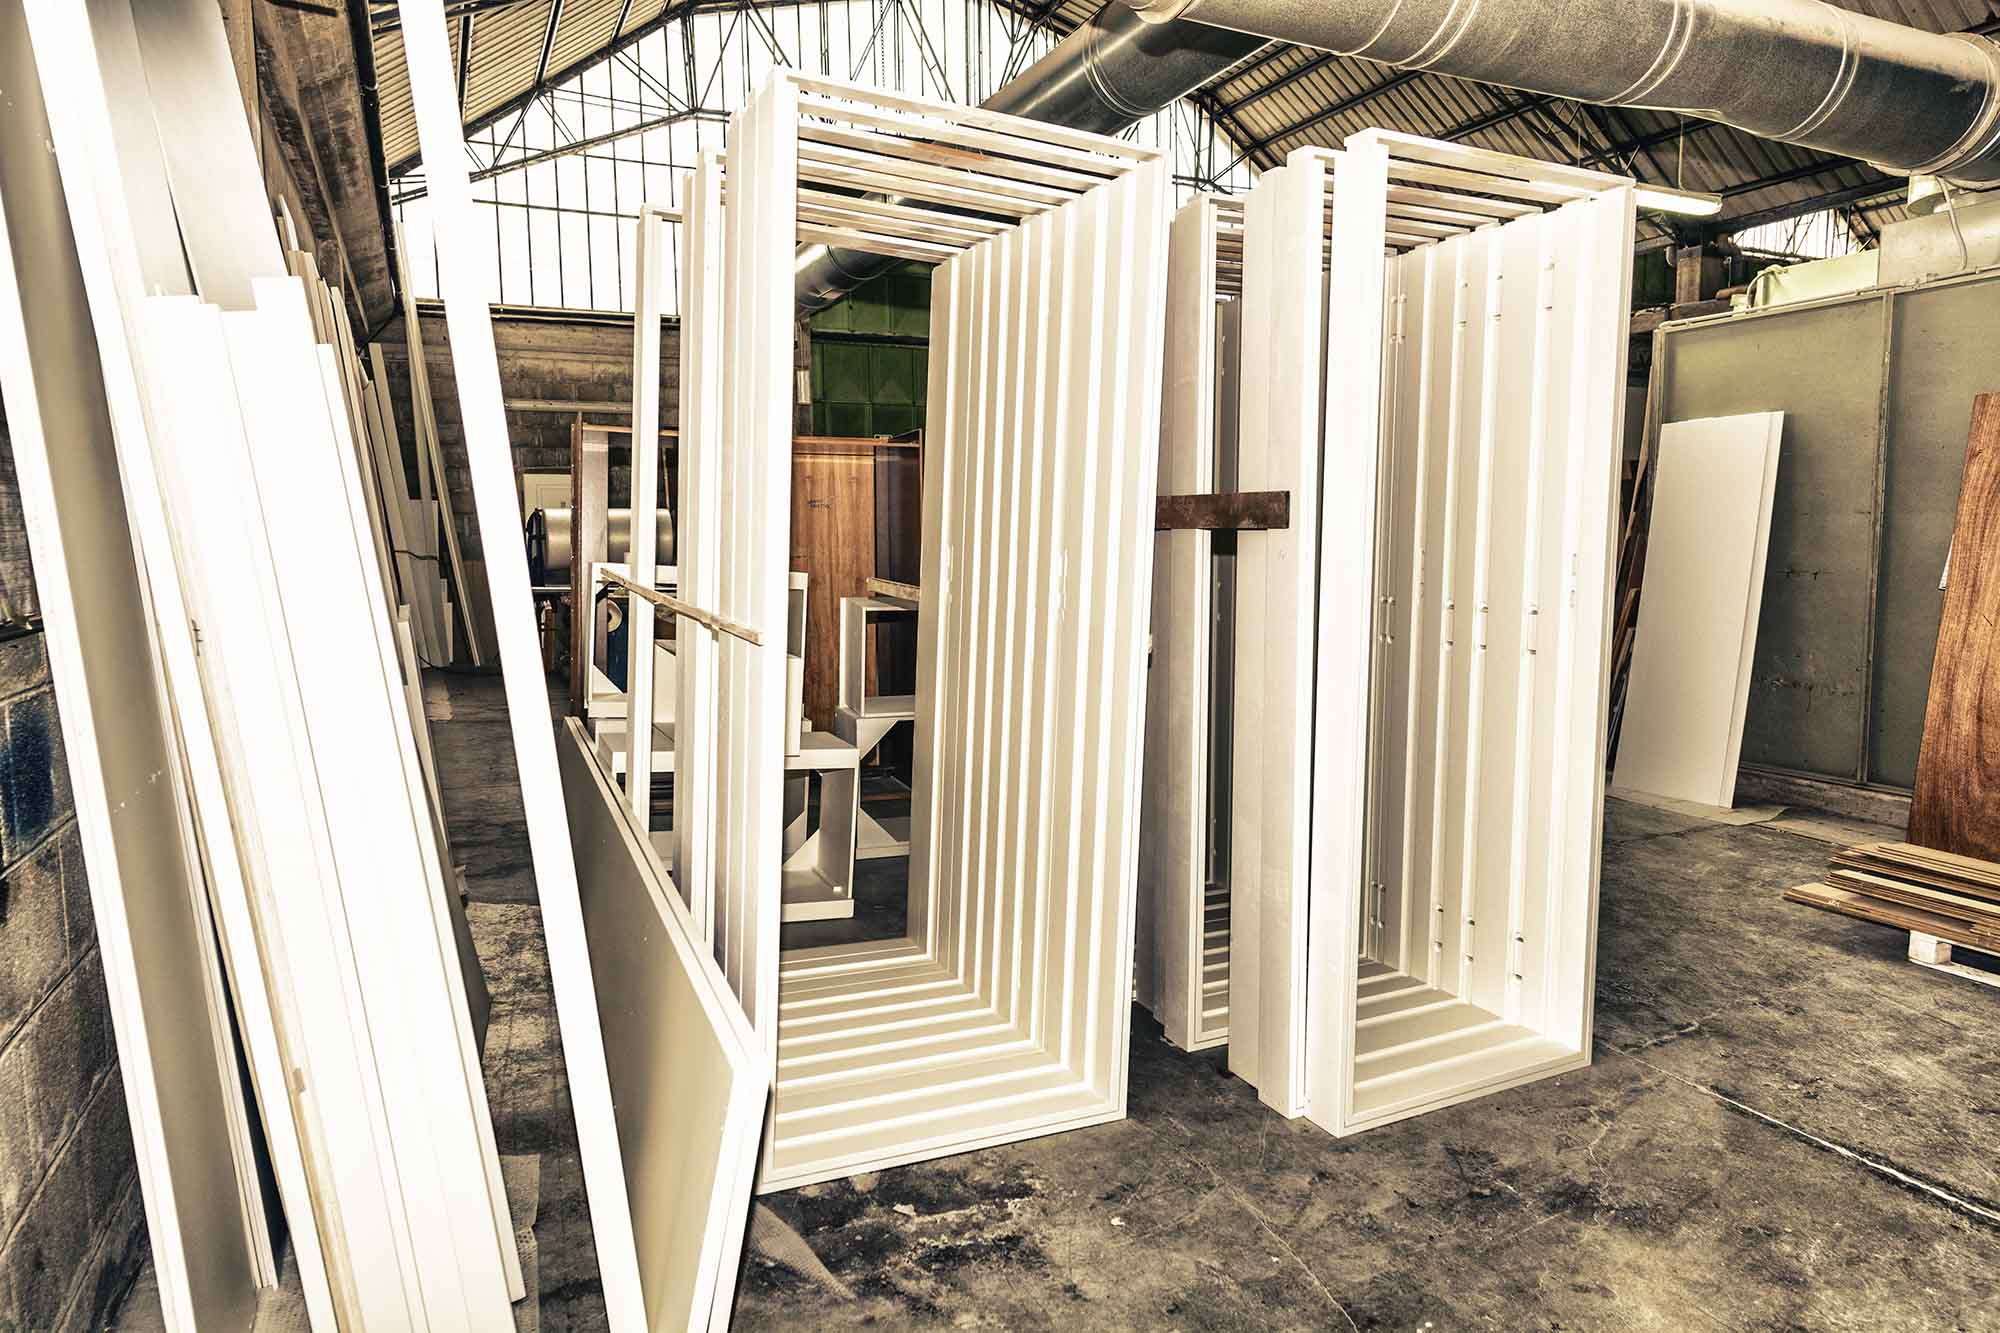 Door frames stacked